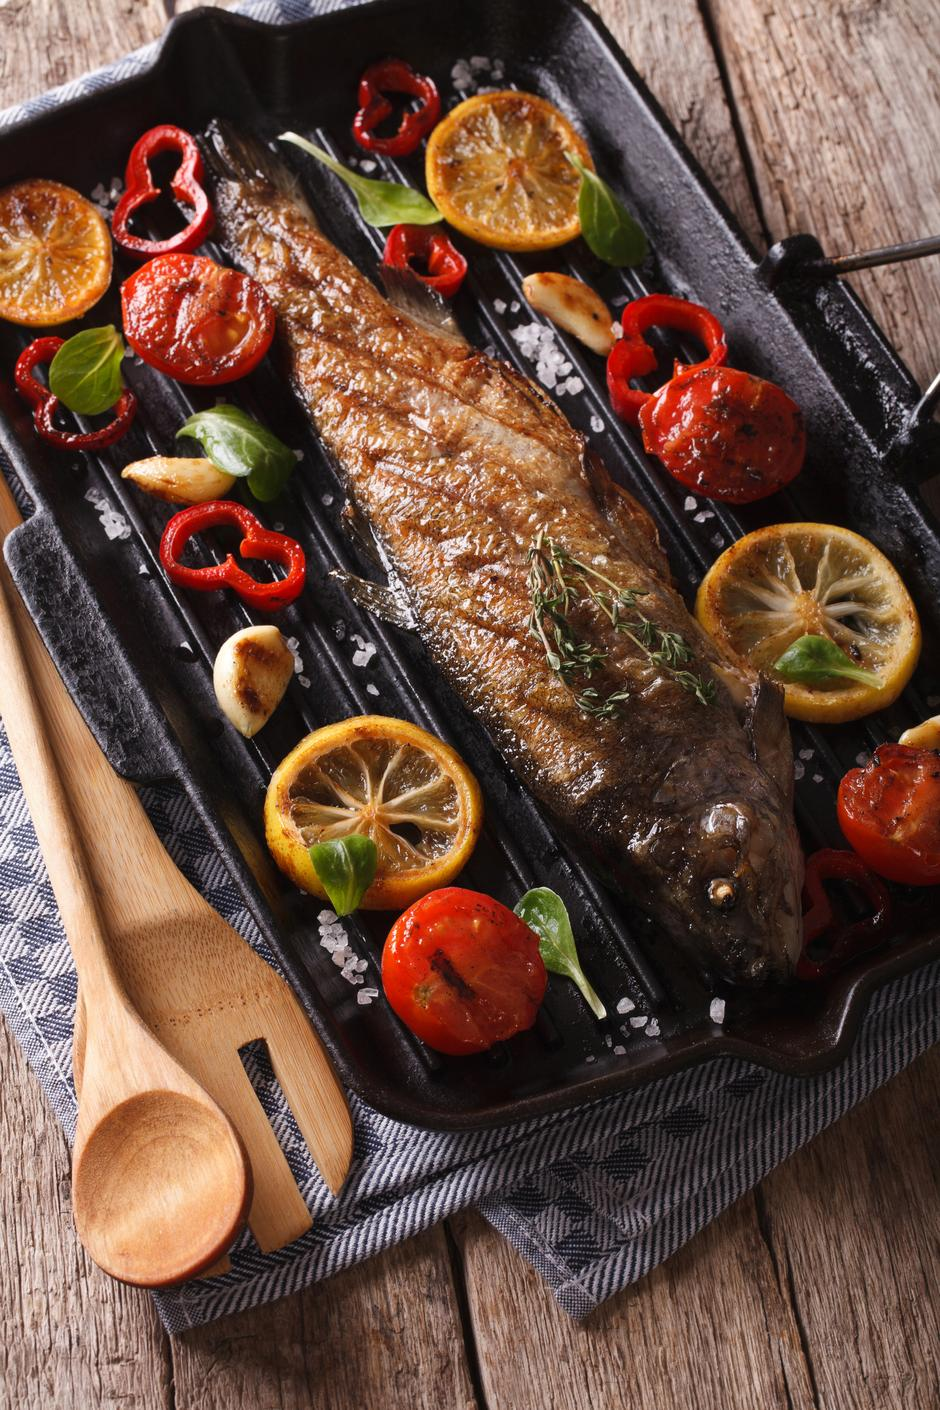 Fish menu: trout with vegetables on a grill pan close-up | Autor: ALLEKO